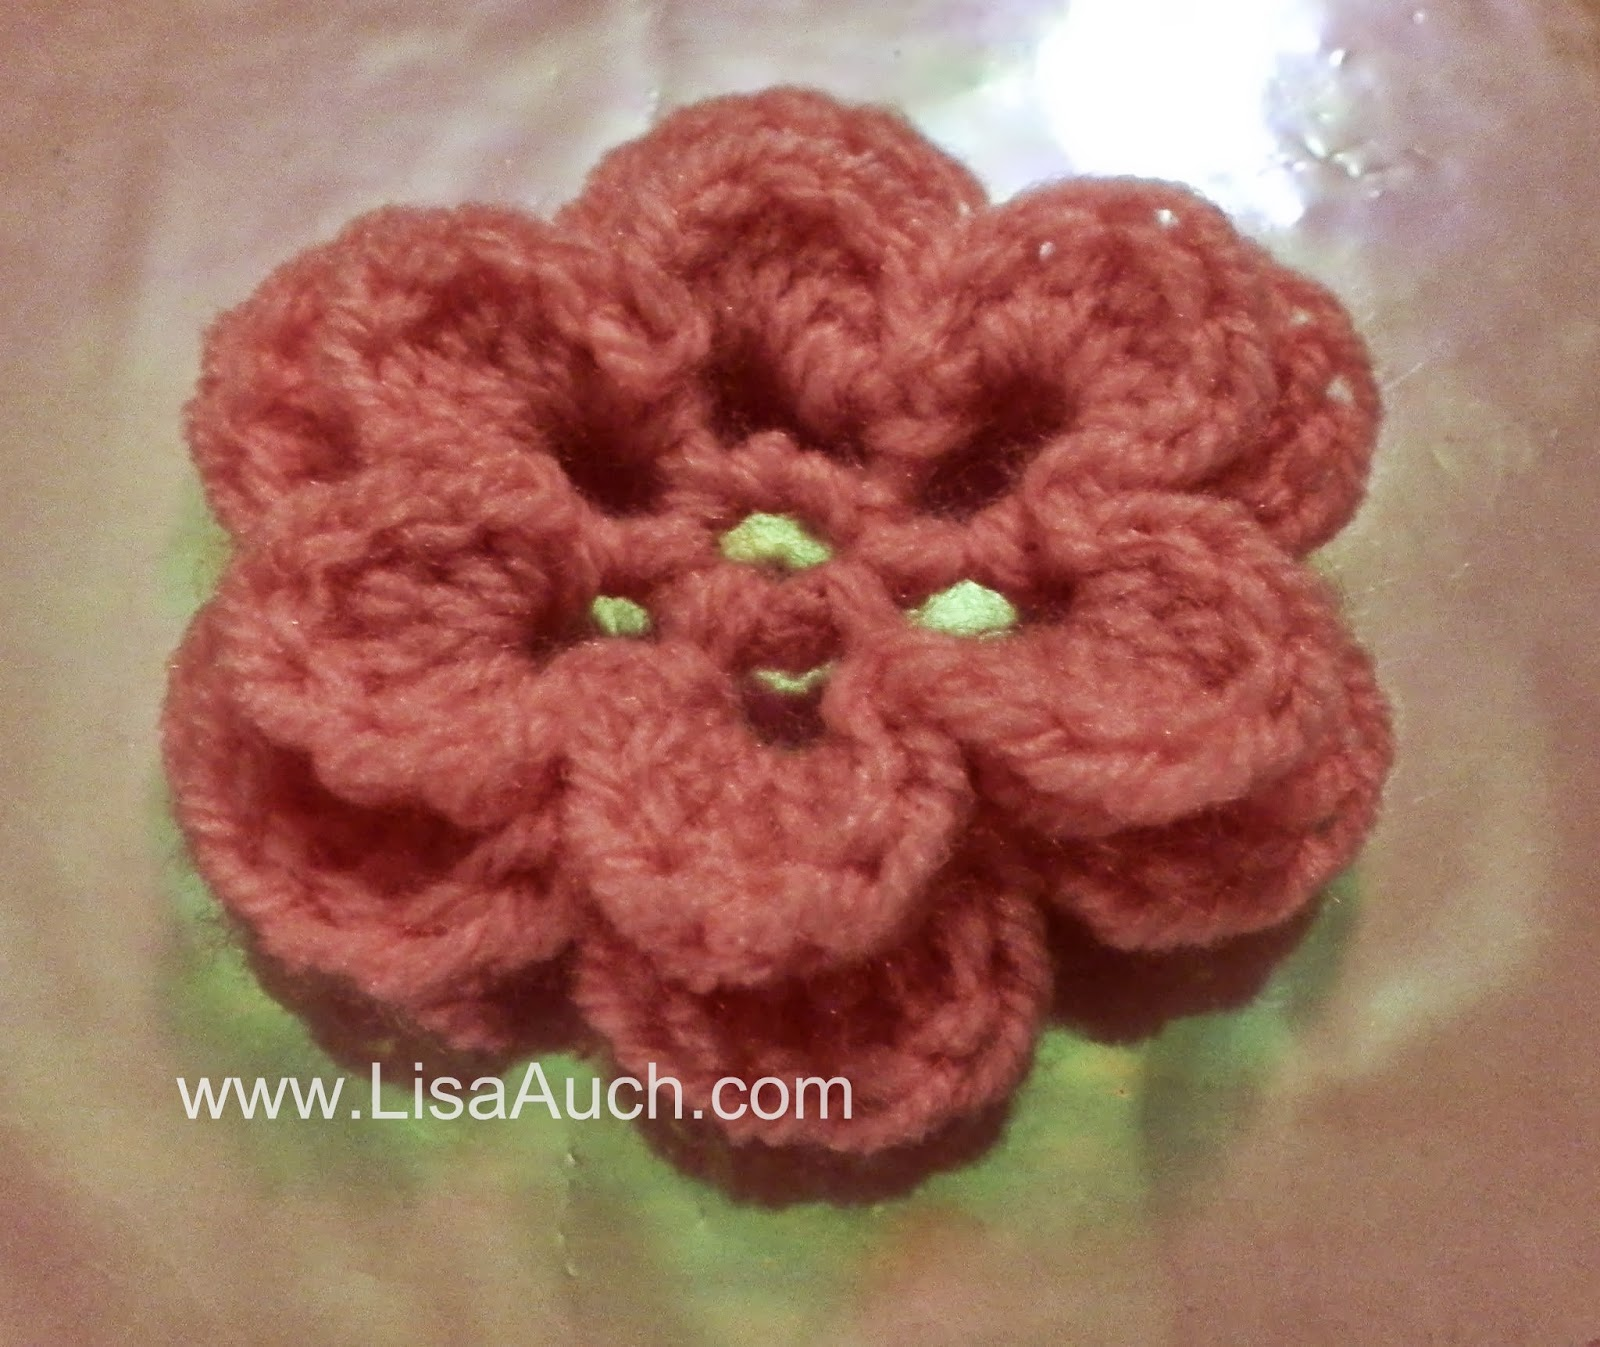 Free Crochet Patterns Flowers Easy : Free Crochet Patterns and Designs by LisaAuch: Crochet ...